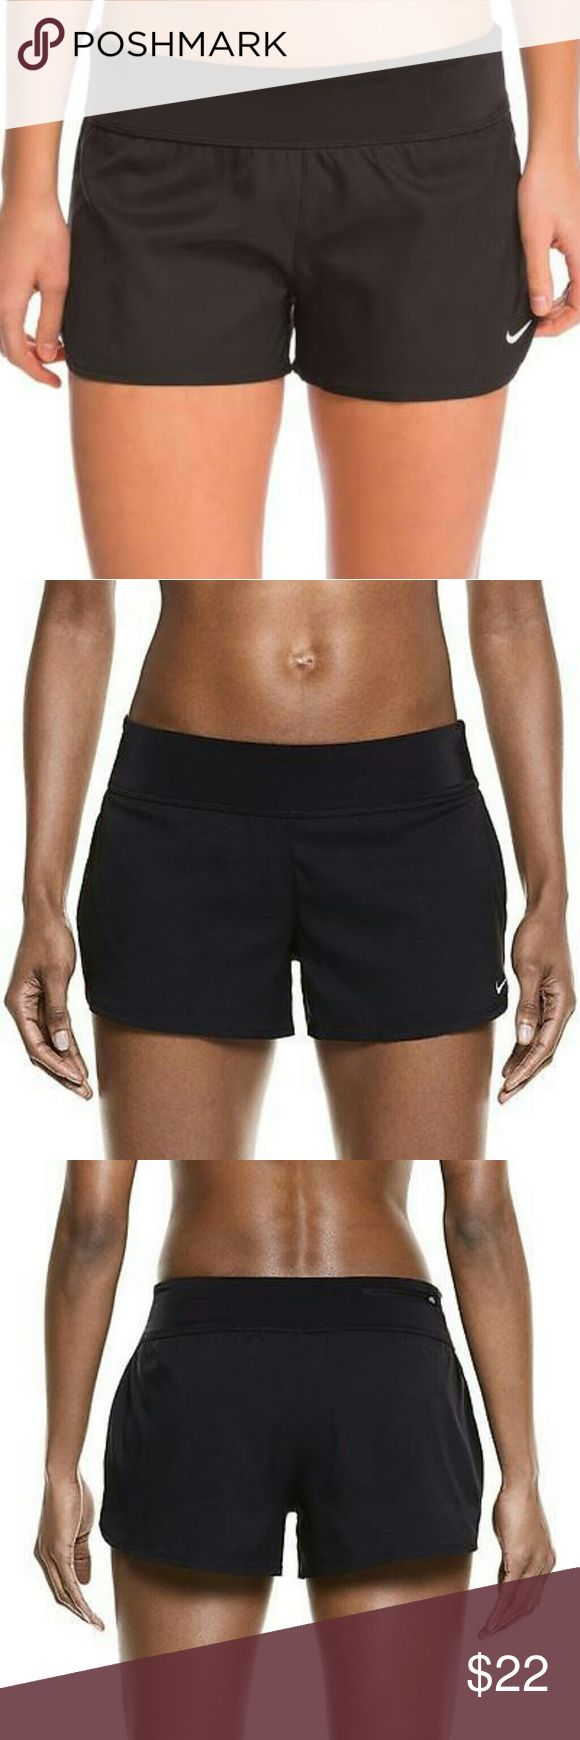 Nwt Nike swim shorts This is a new pair of Nike swim shorts for women available in size large and extra-large . I only have color black left at this time. Nike Swim